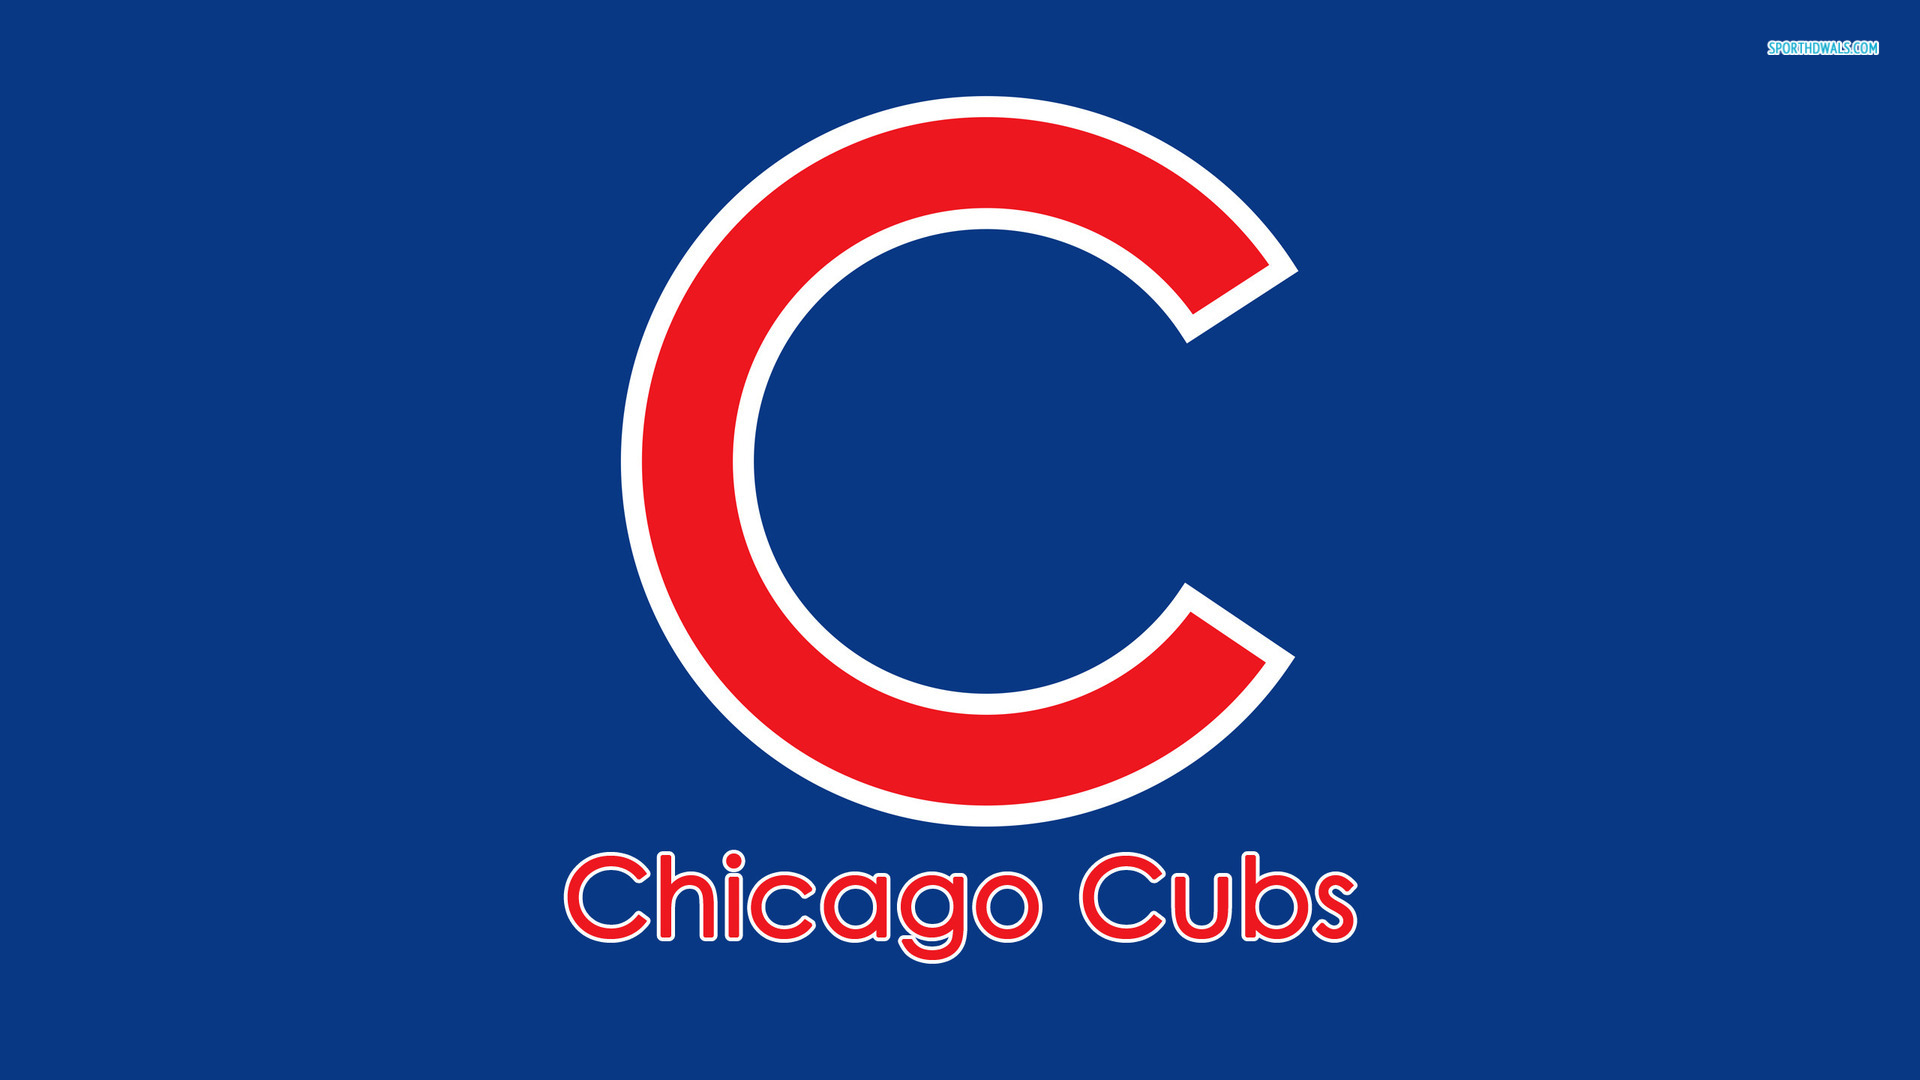 Chicago Cubs wallpaper 1920x1080